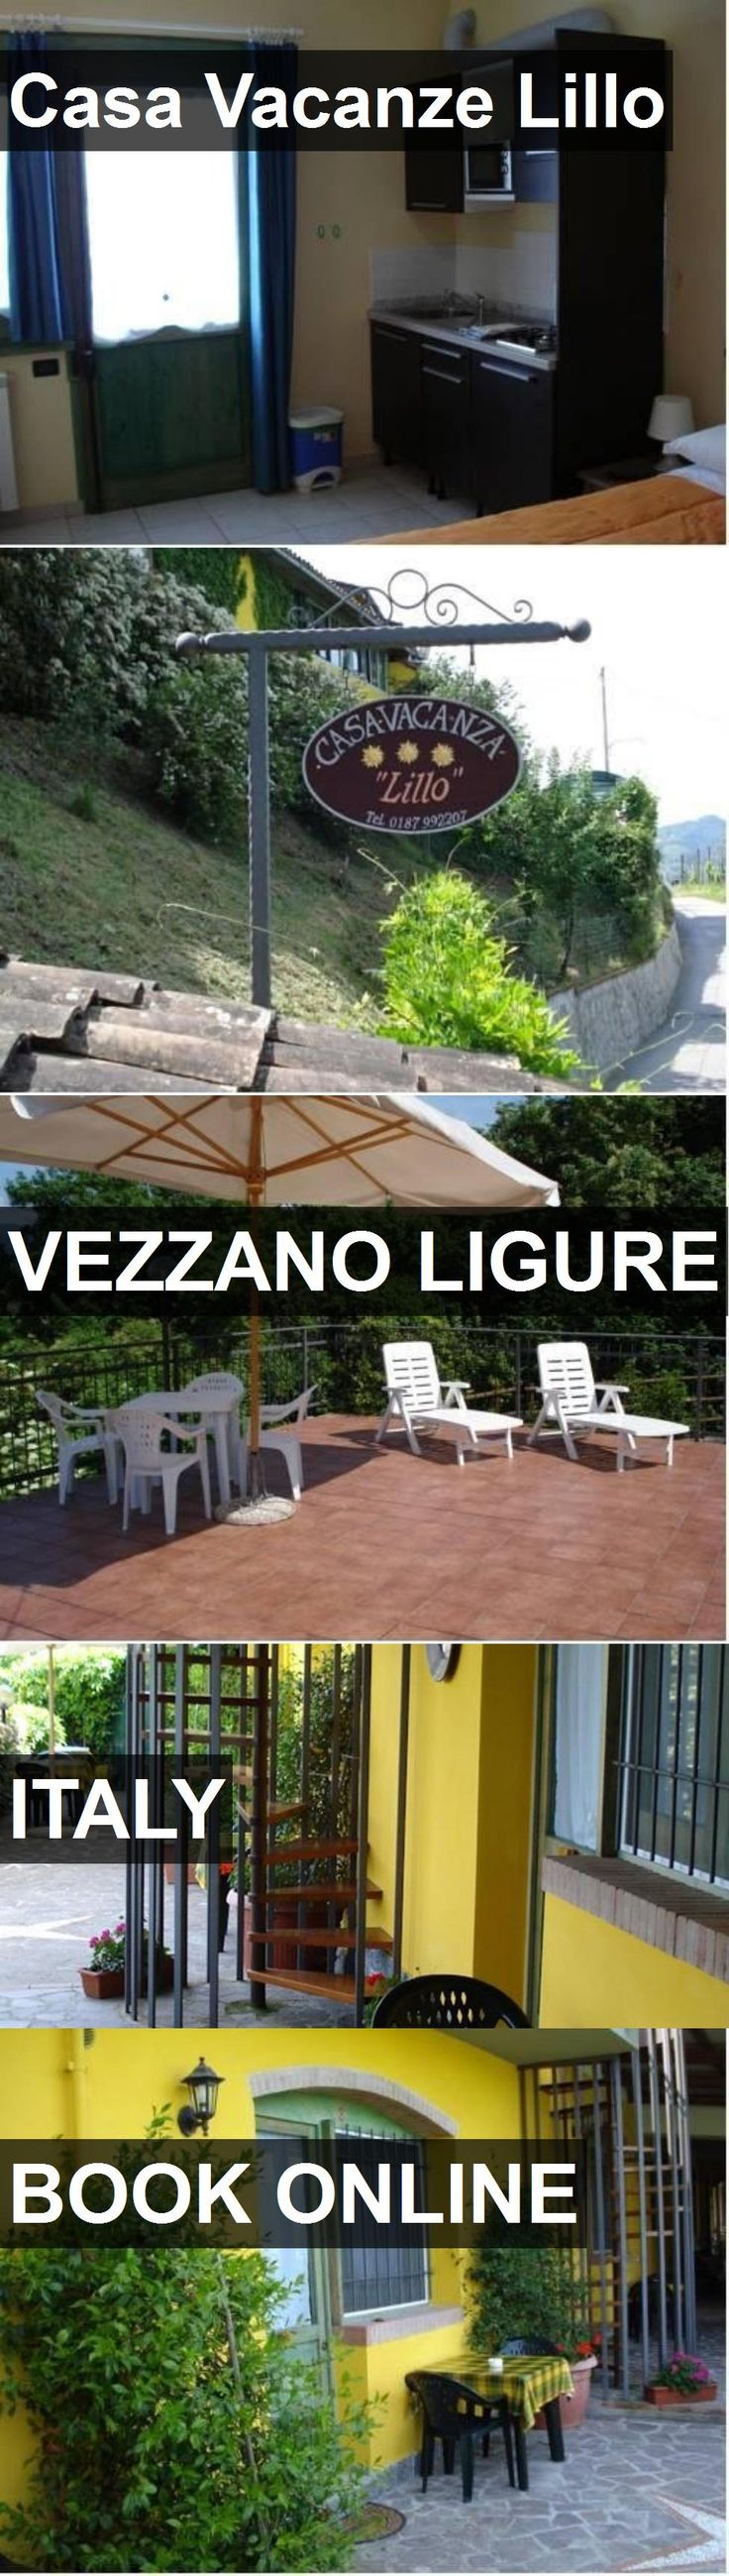 Hotel Casa Vacanze Lillo in Vezzano Ligure, Italy. For more information, photos, reviews and best prices please follow the link. #Italy #VezzanoLigure #travel #vacation #hotel